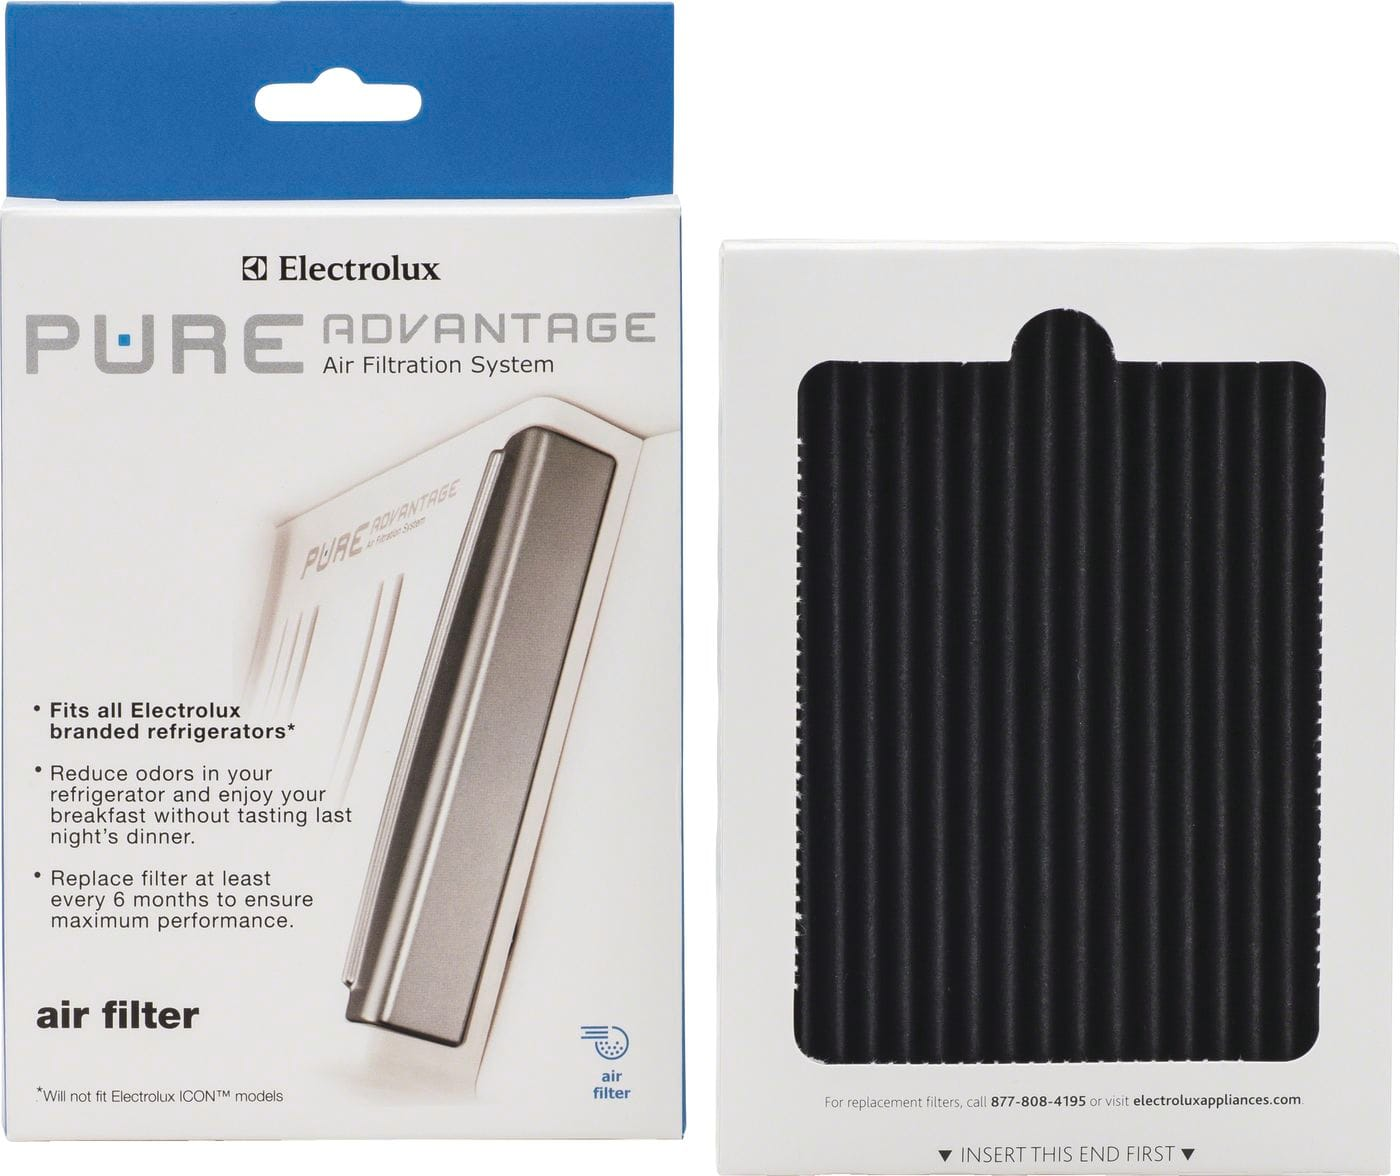 Electrolux Pure Advantage® Air Filter